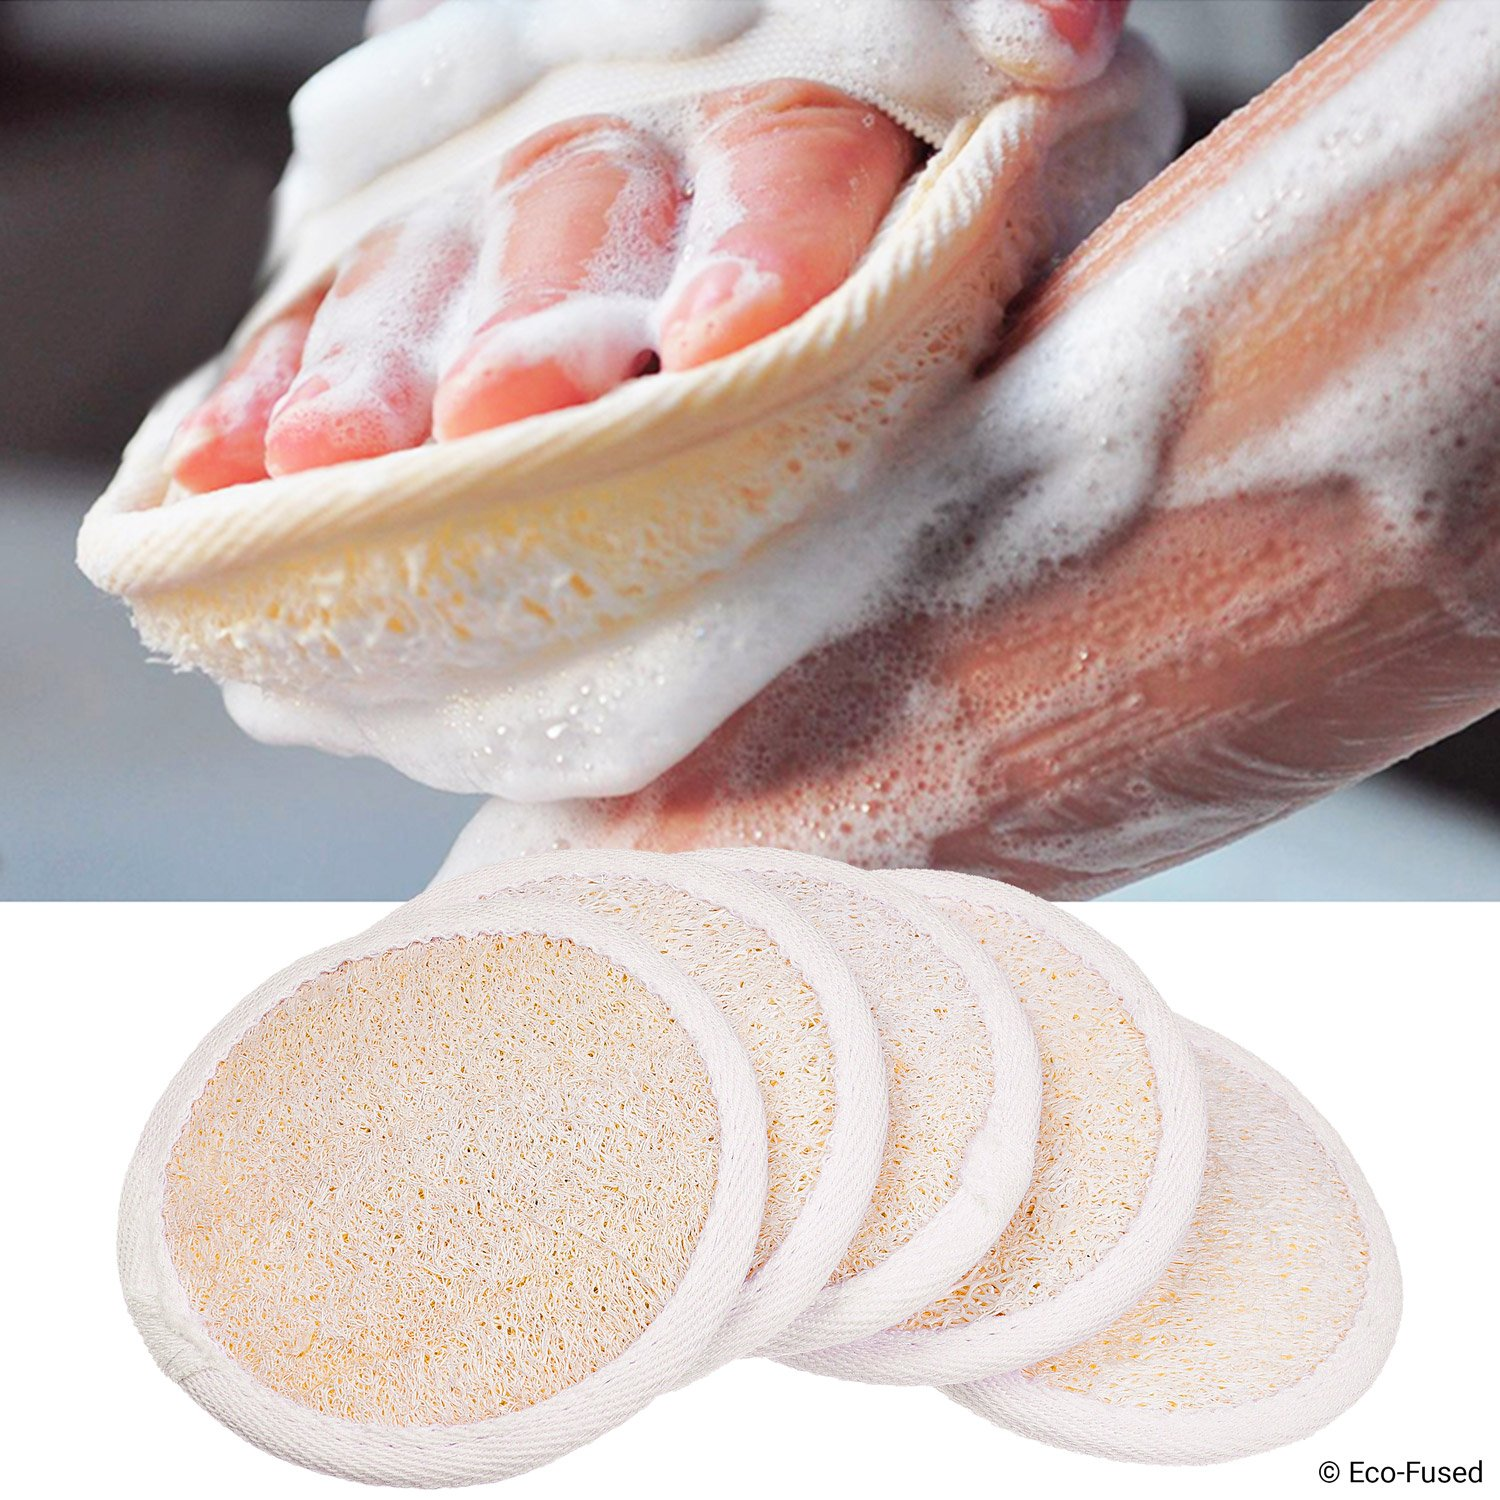 Loofah Pads (Pack of 5) - Exfoliating Scrubbing Sponges - Natural Luffa Material - Essential Skin Care Product - For Shower/Bath - Fibrous Texture - Perfect for Face/Body Wash - Wet It and Apply Soap